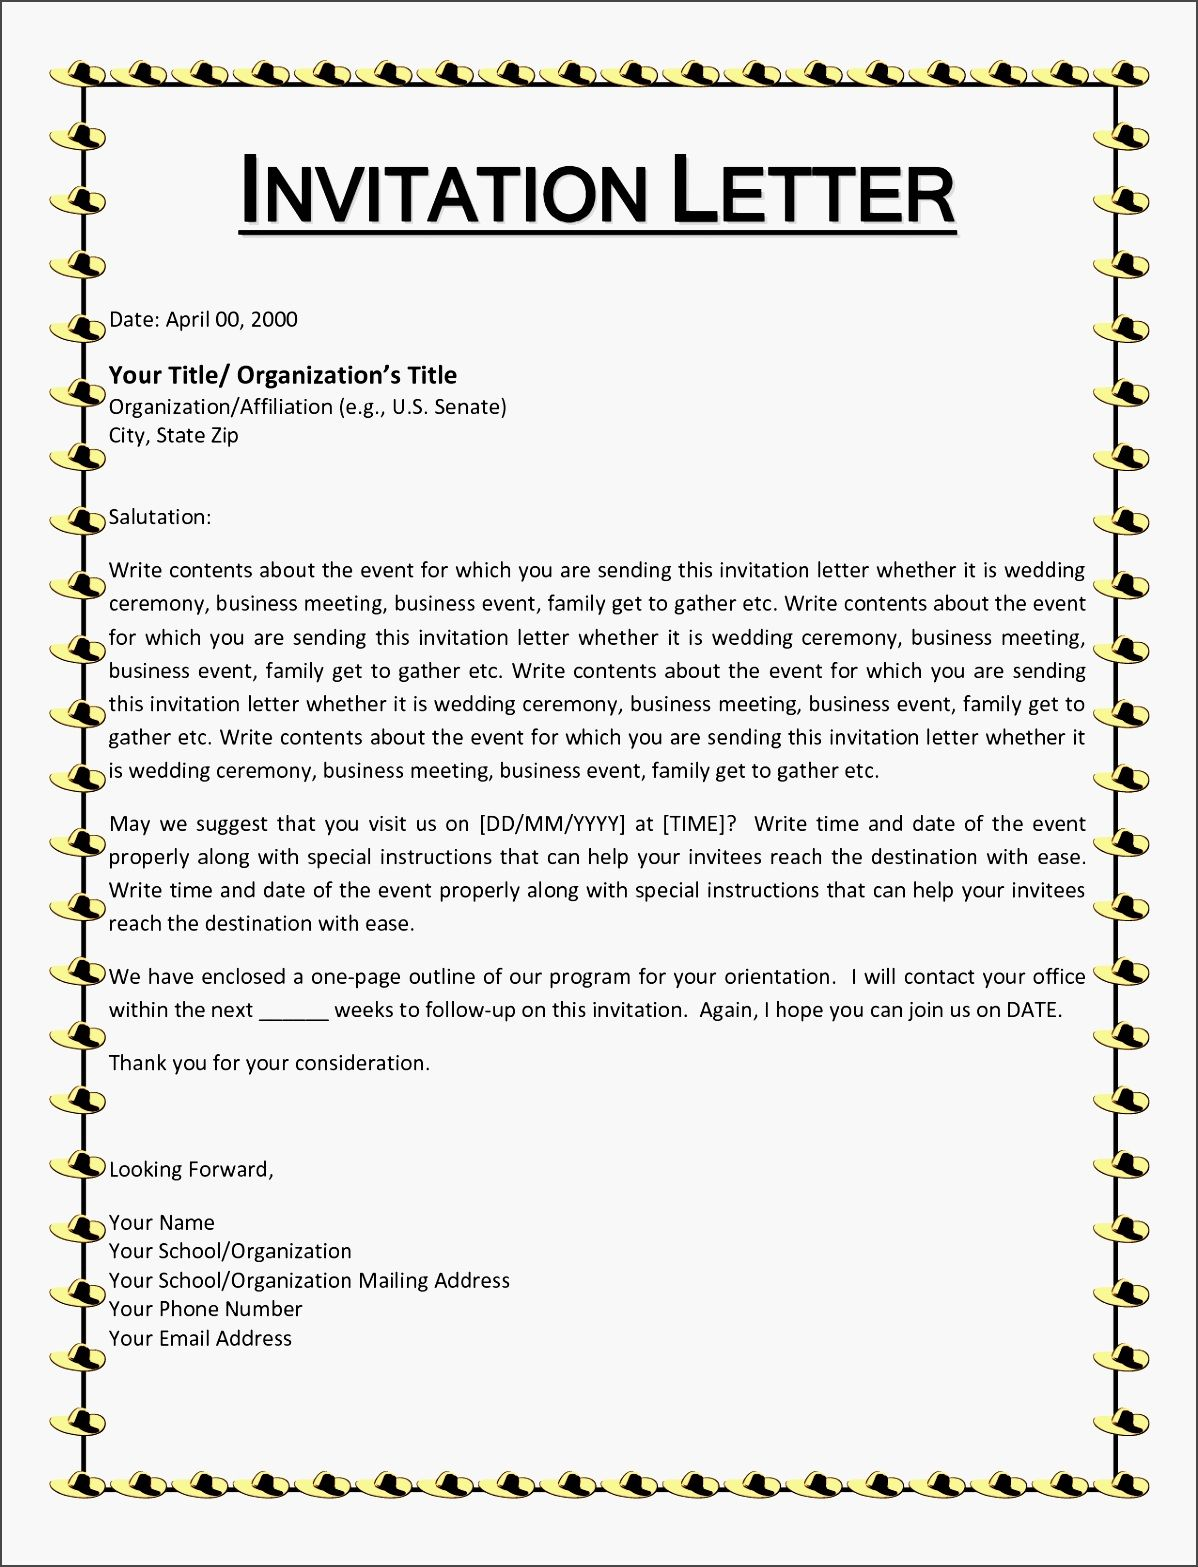 Invitation Letter Informal Saevk Beautiful Wedding Invitation